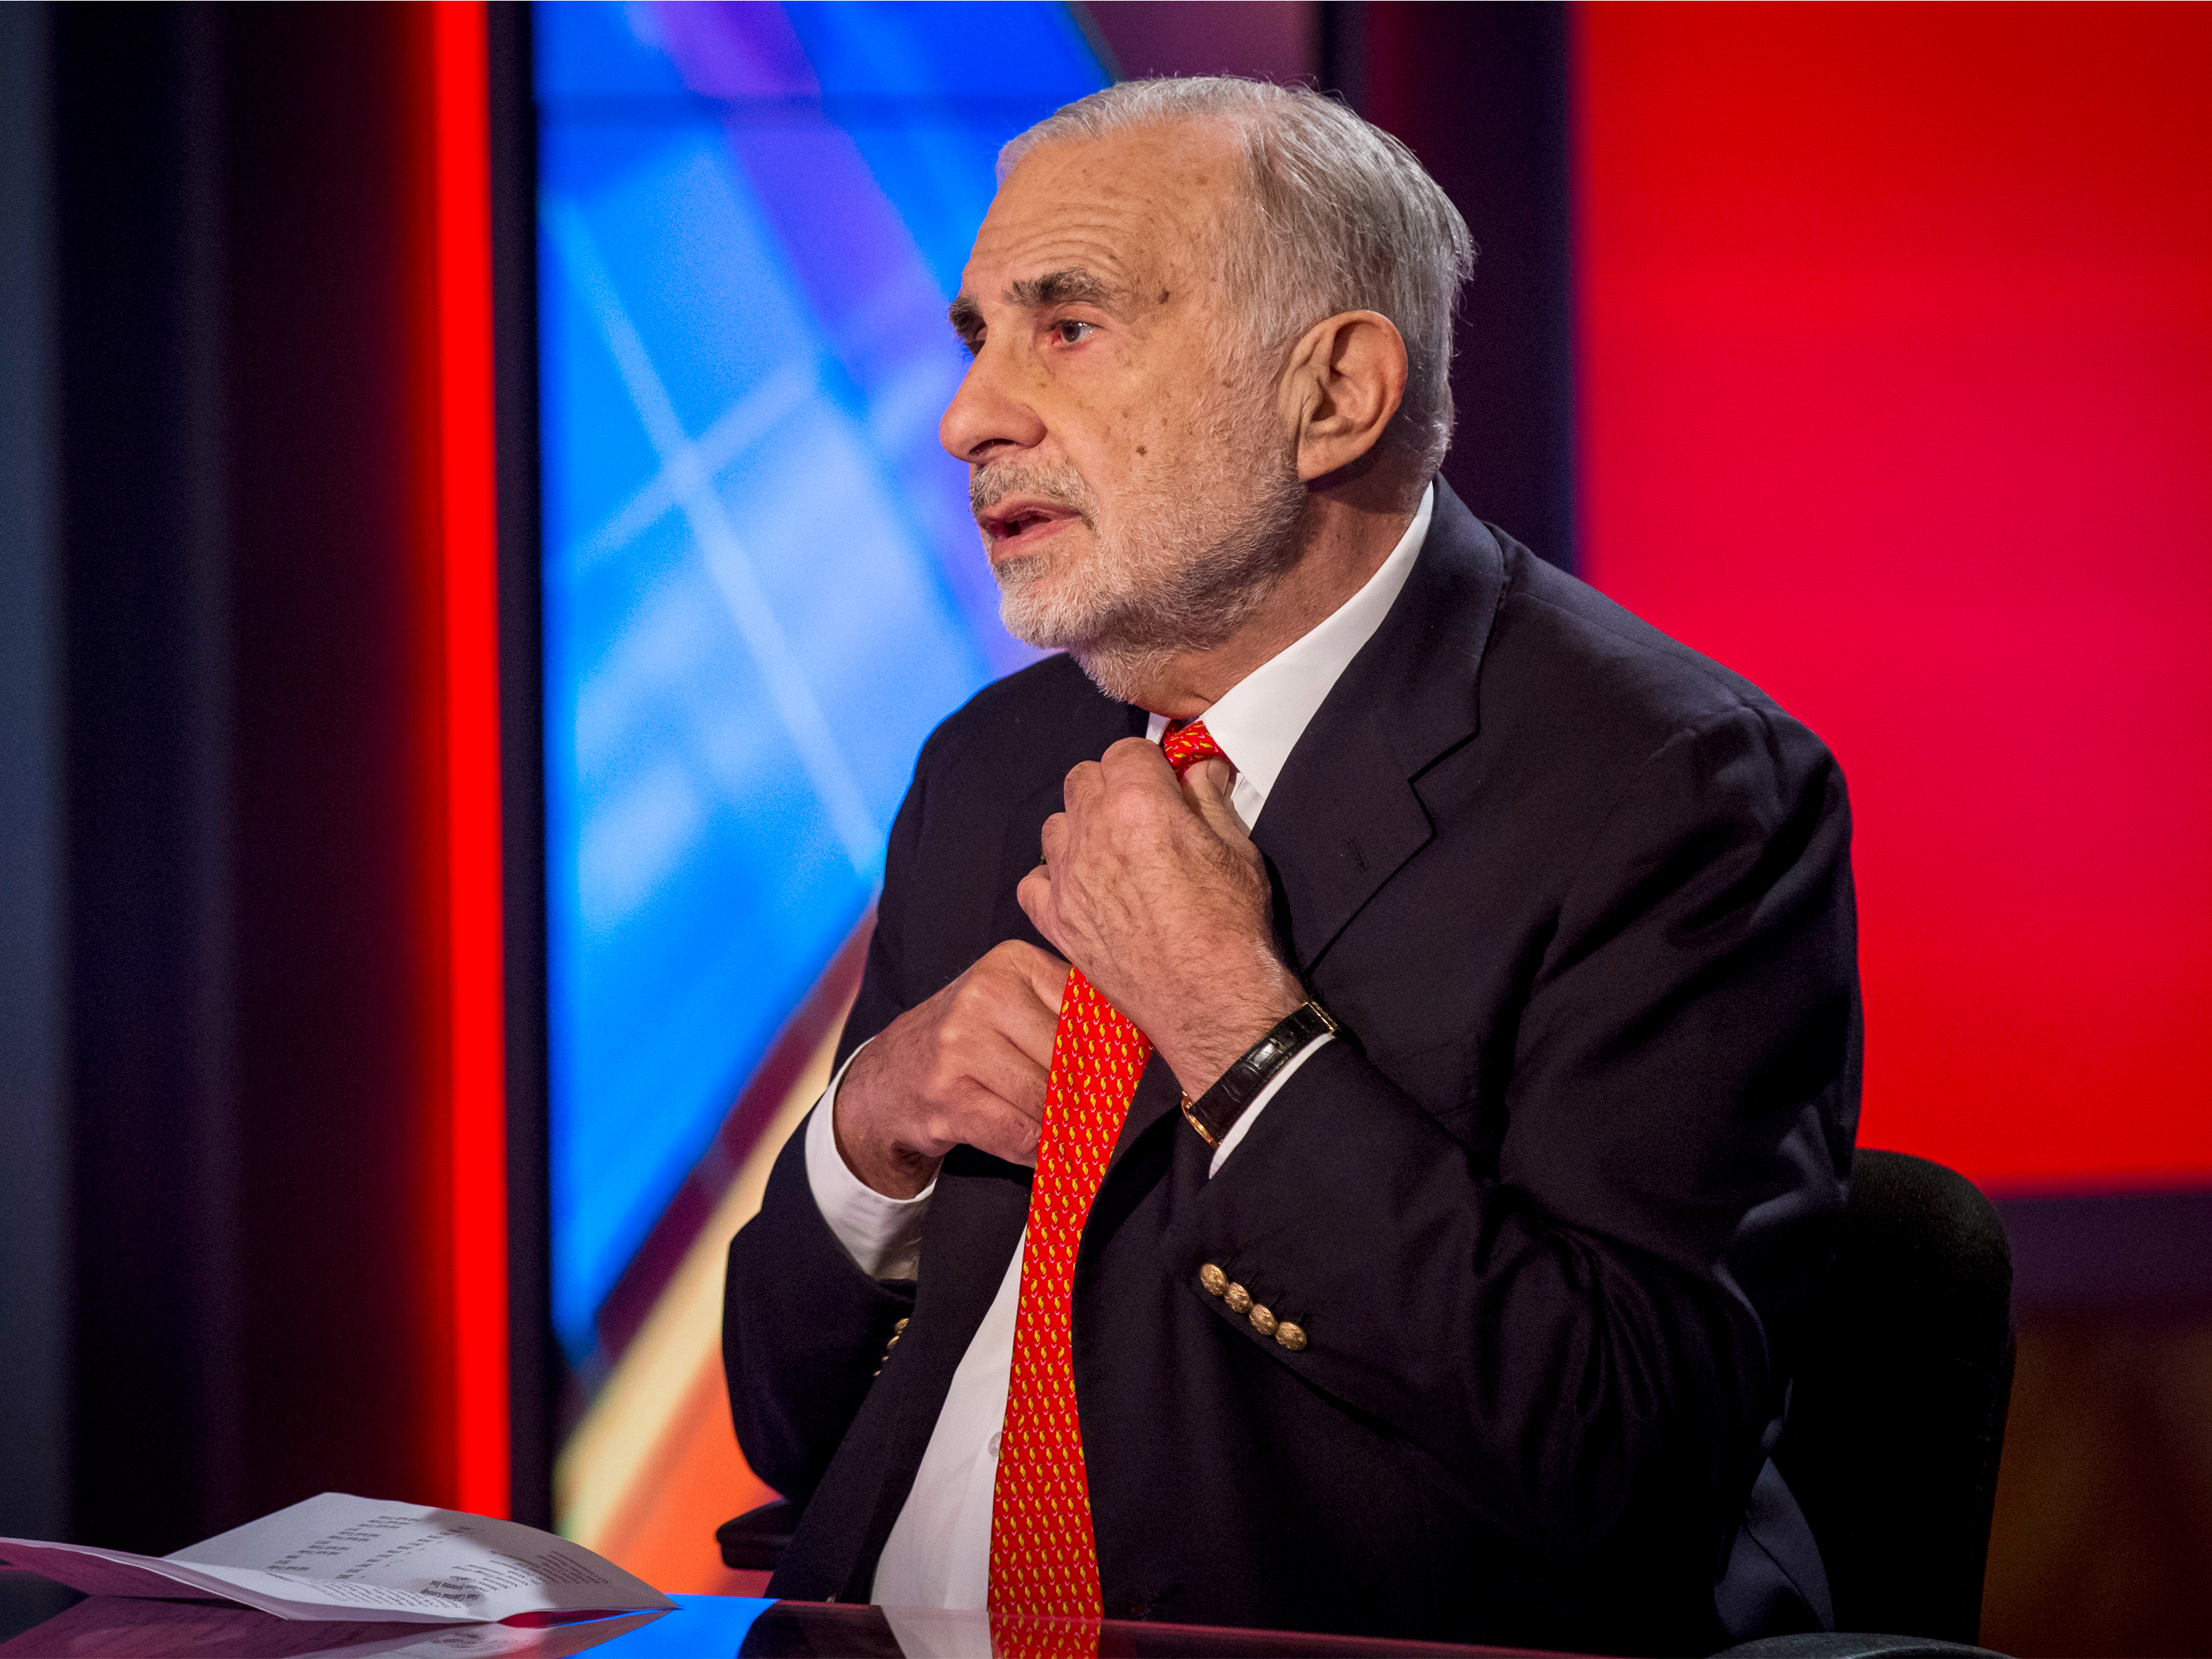 The Feds are investigating billionaire Carl Icahn's role advising the Trump administration